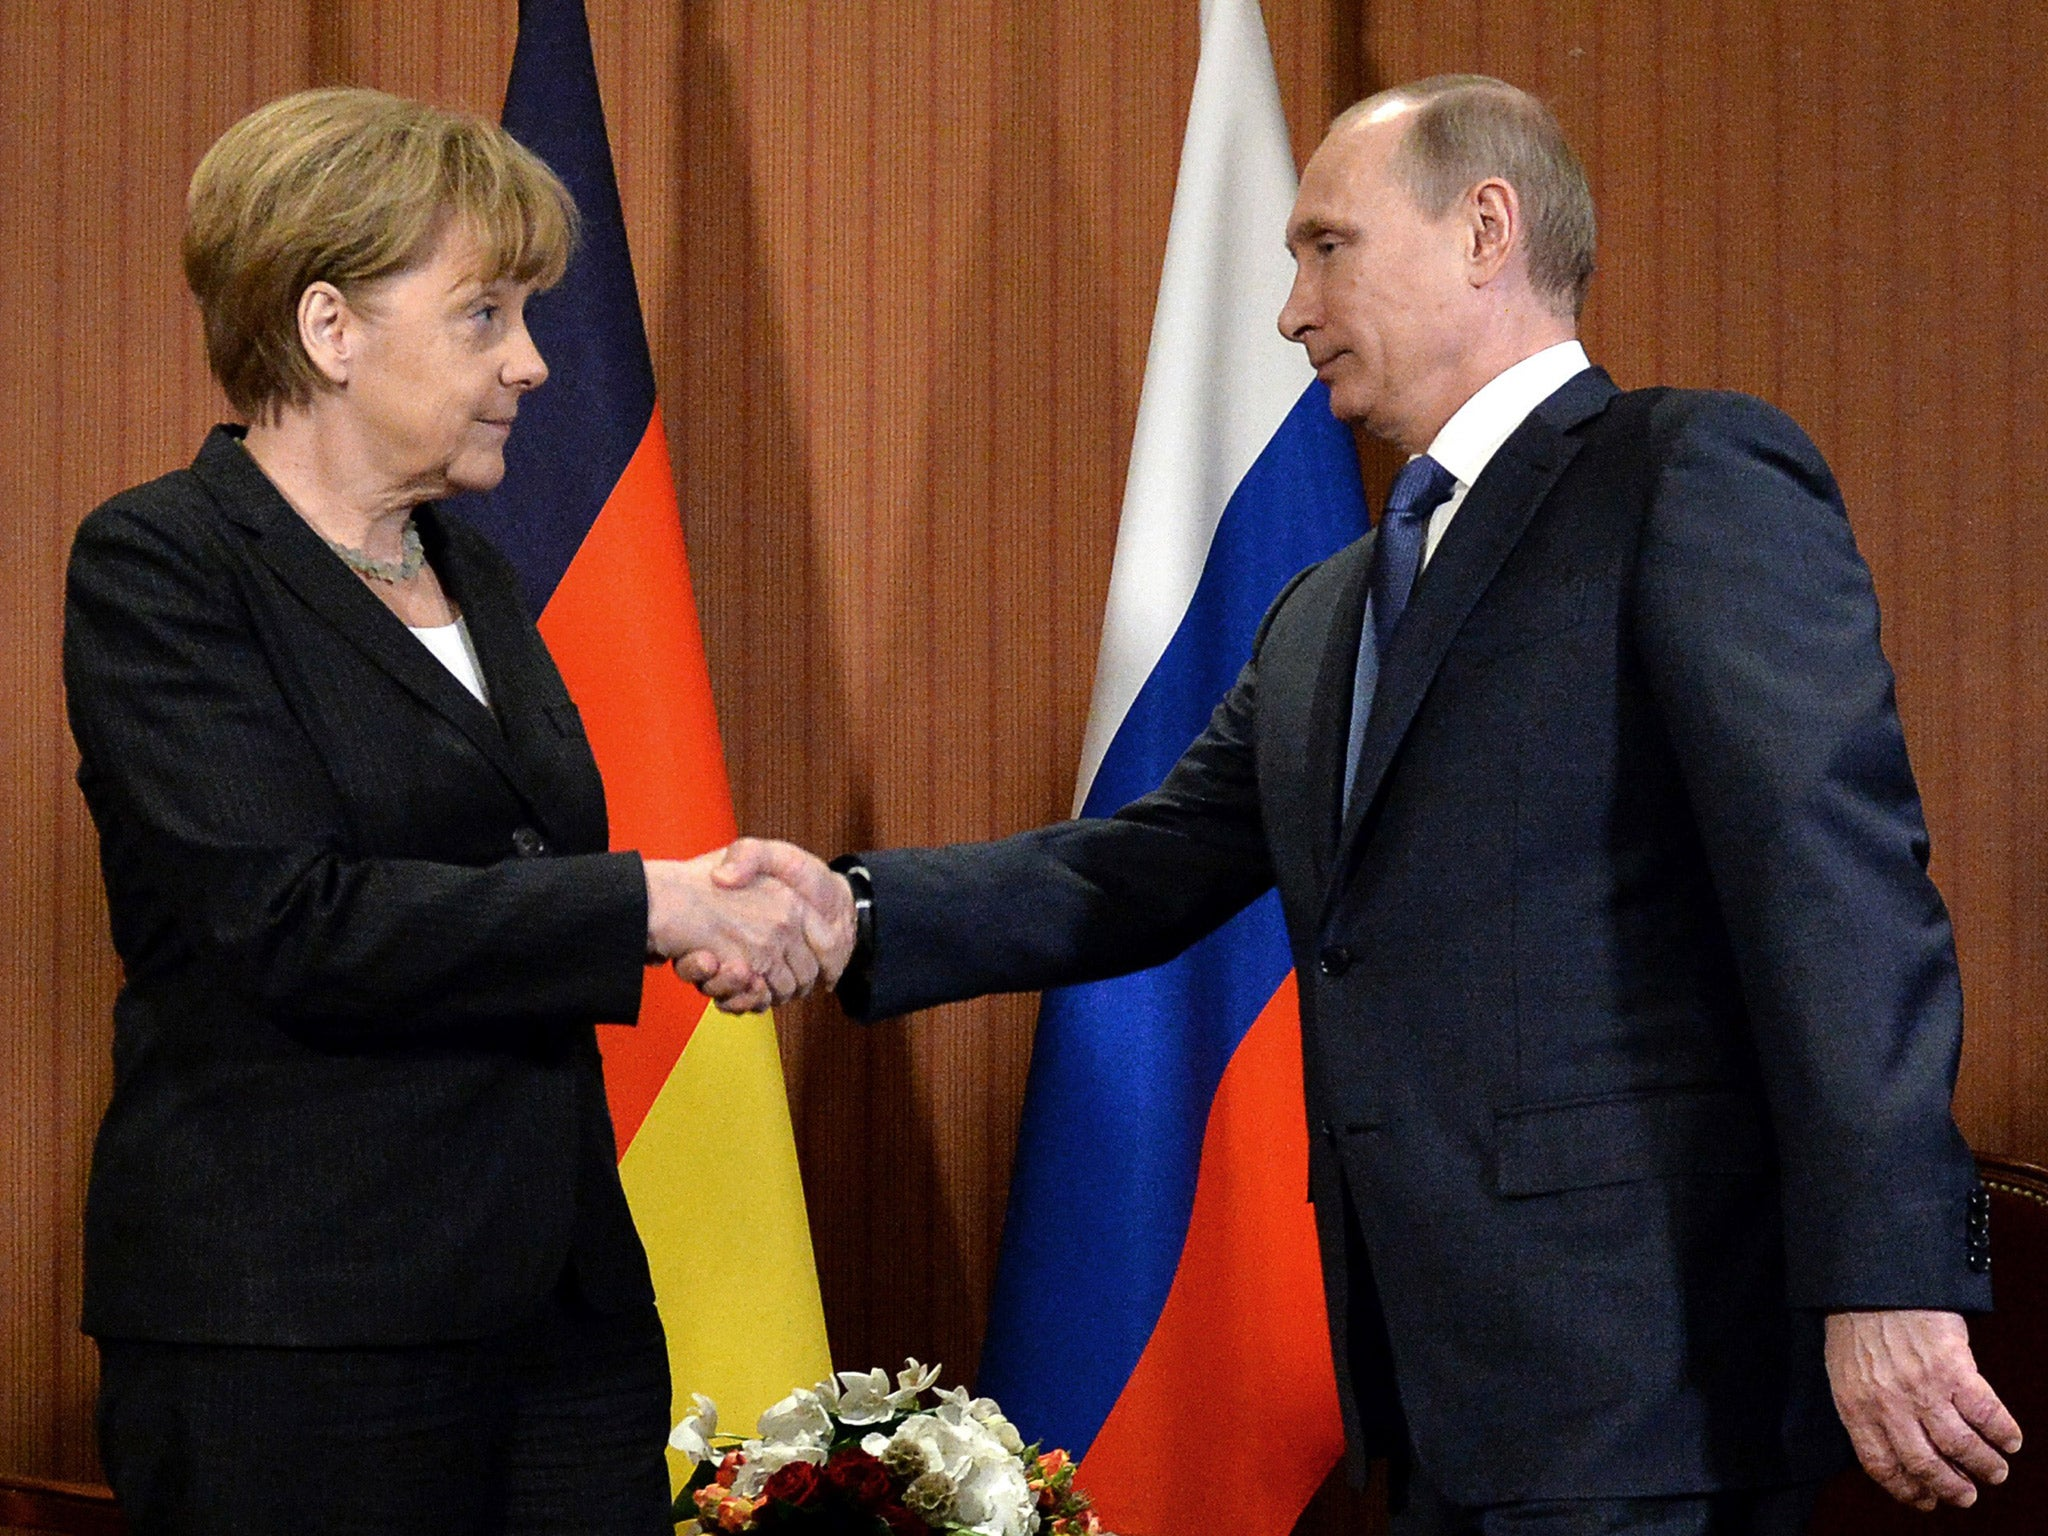 Land For Gas Merkel And Putin Discussed Secret Deal Could End Ukraine Crisis Europe News